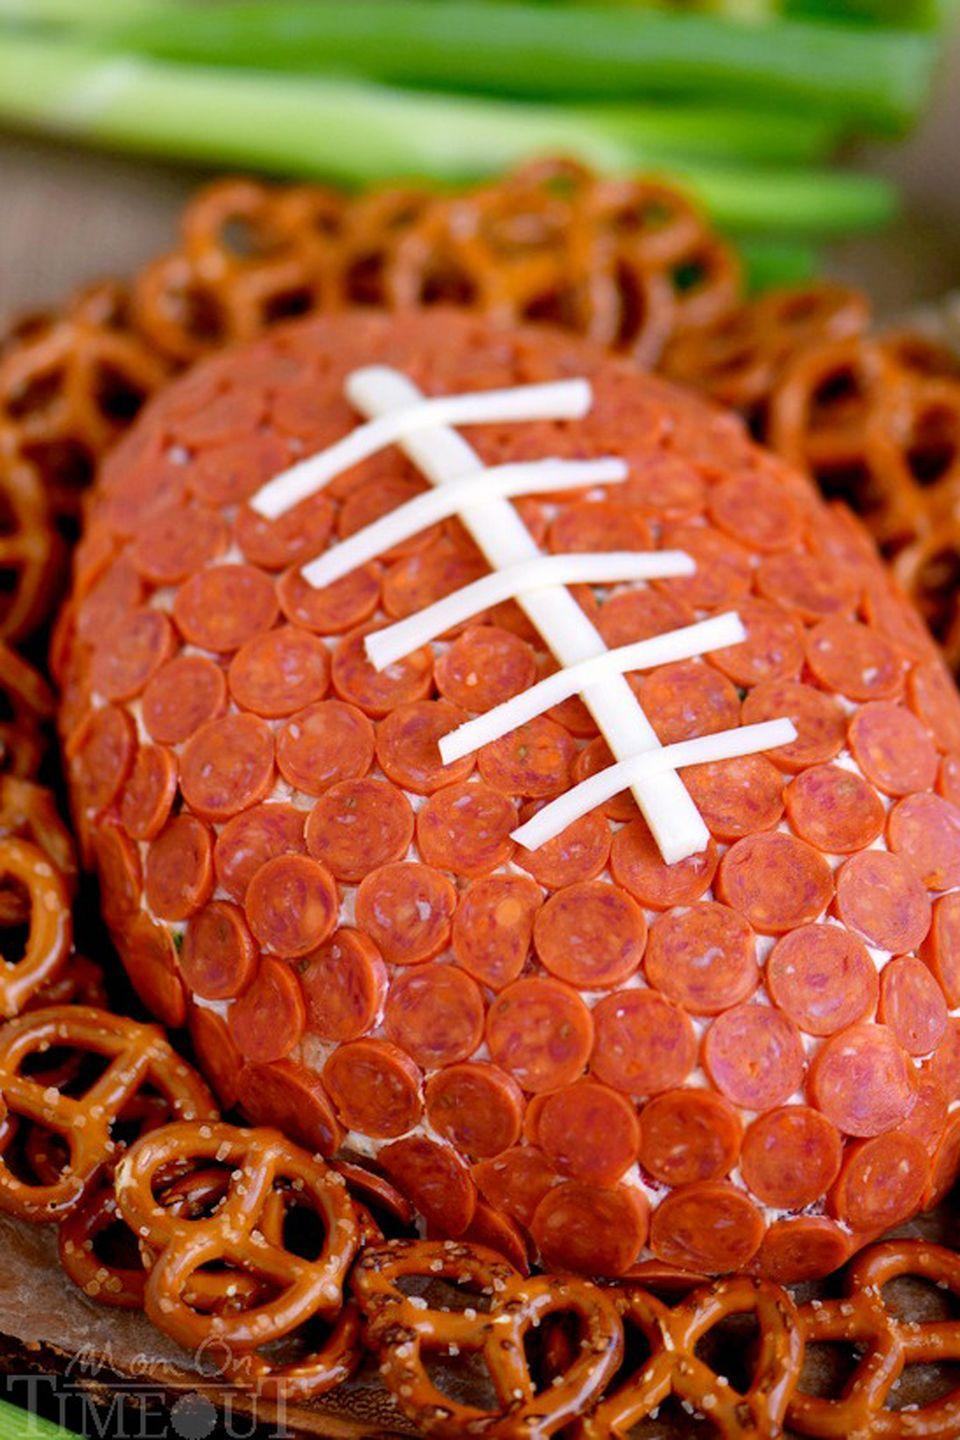 "<p>One look at this football-shaped cheese ball covered in pepperoni, and your guests will be awarding you the MVP award.</p><p><strong>Get the recipe from <a href=""http://www.momontimeout.com/2015/10/pepperoni-pizza-football-cheese-ball-recipe/"" rel=""nofollow noopener"" target=""_blank"" data-ylk=""slk:Mom on Time Out"" class=""link rapid-noclick-resp"">Mom on Time Out</a>.</strong> </p>"